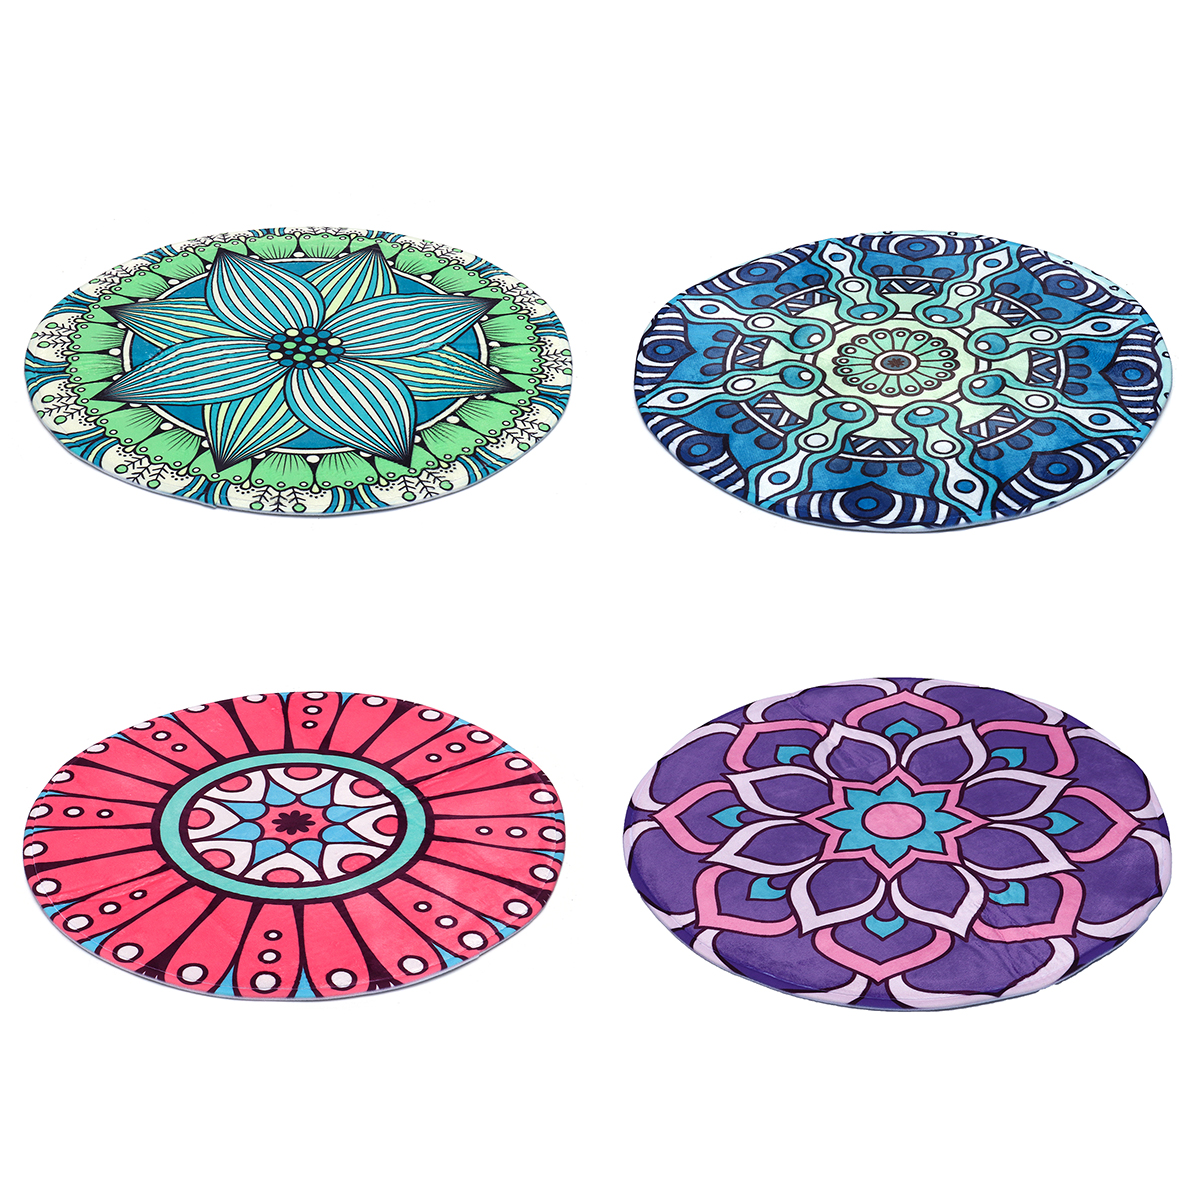 Round Style Decoration Fluffy Rugs Shaggy Carpet Floor Mat Anti-Skid at Home Bedroom Yoga Meditaion Mat